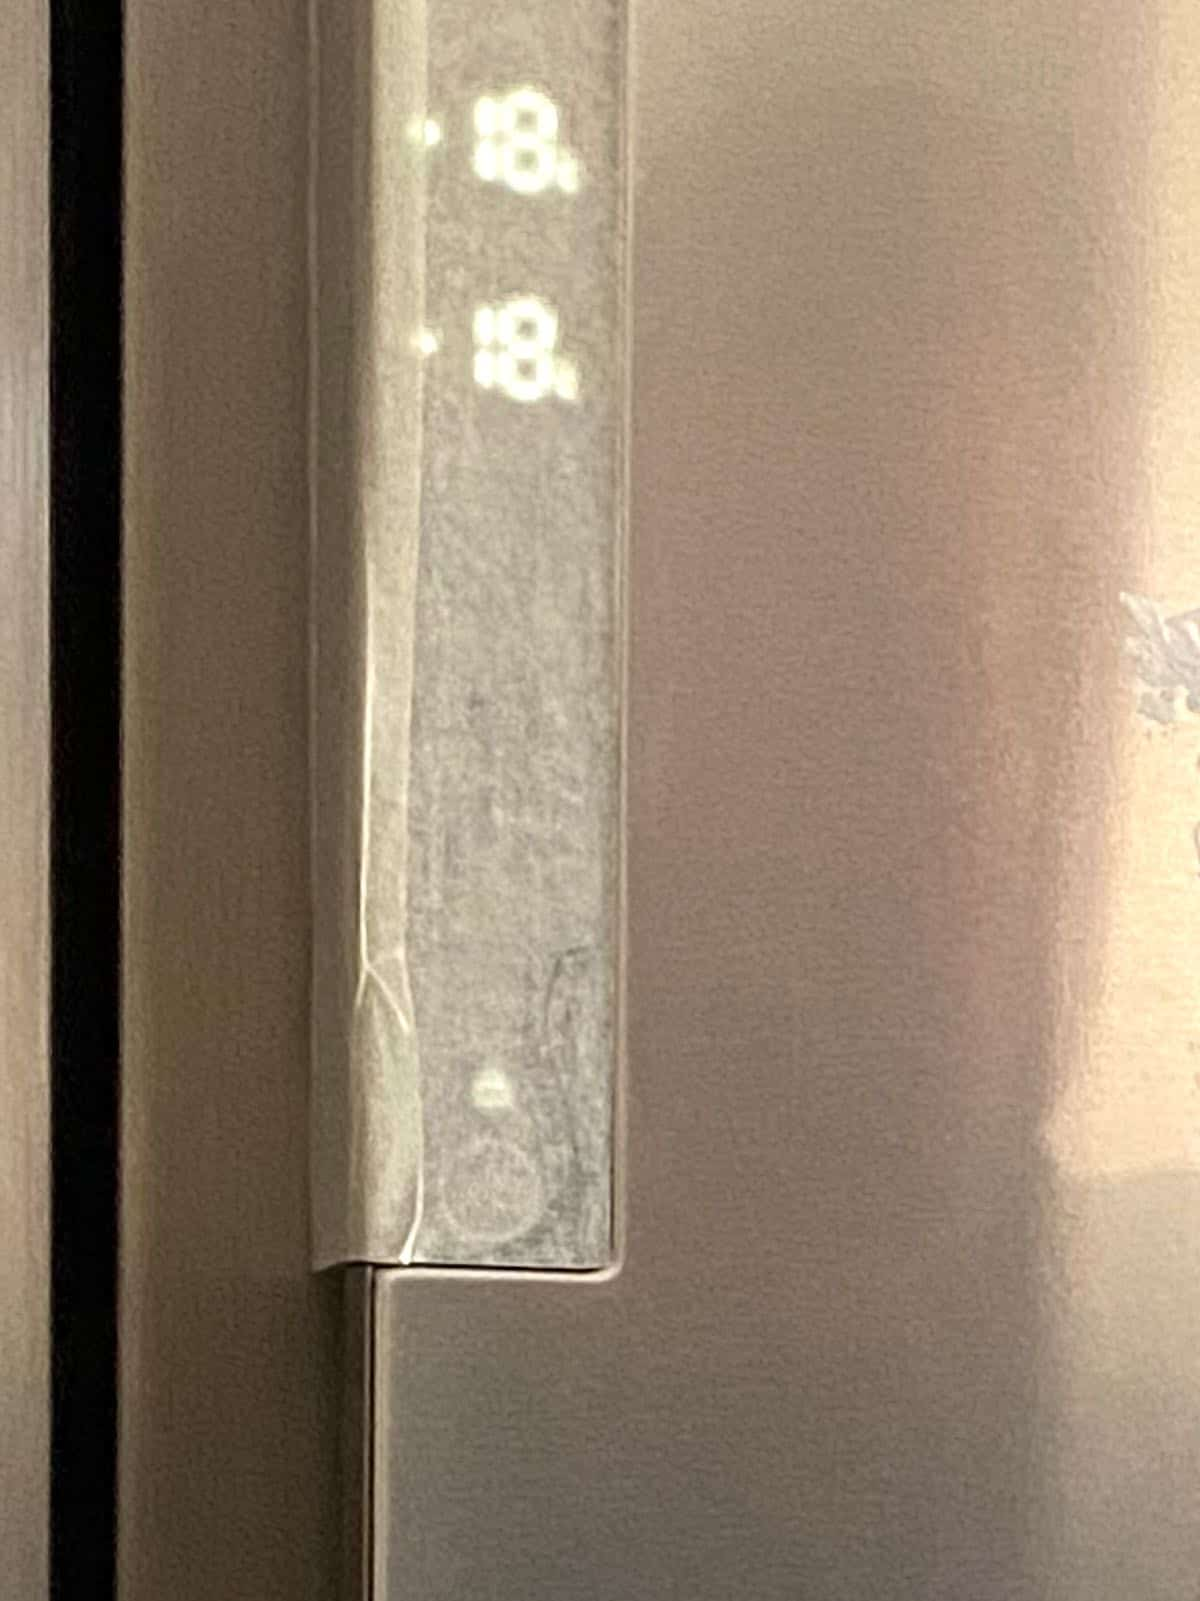 Areas of the a fridge covered with protective tape